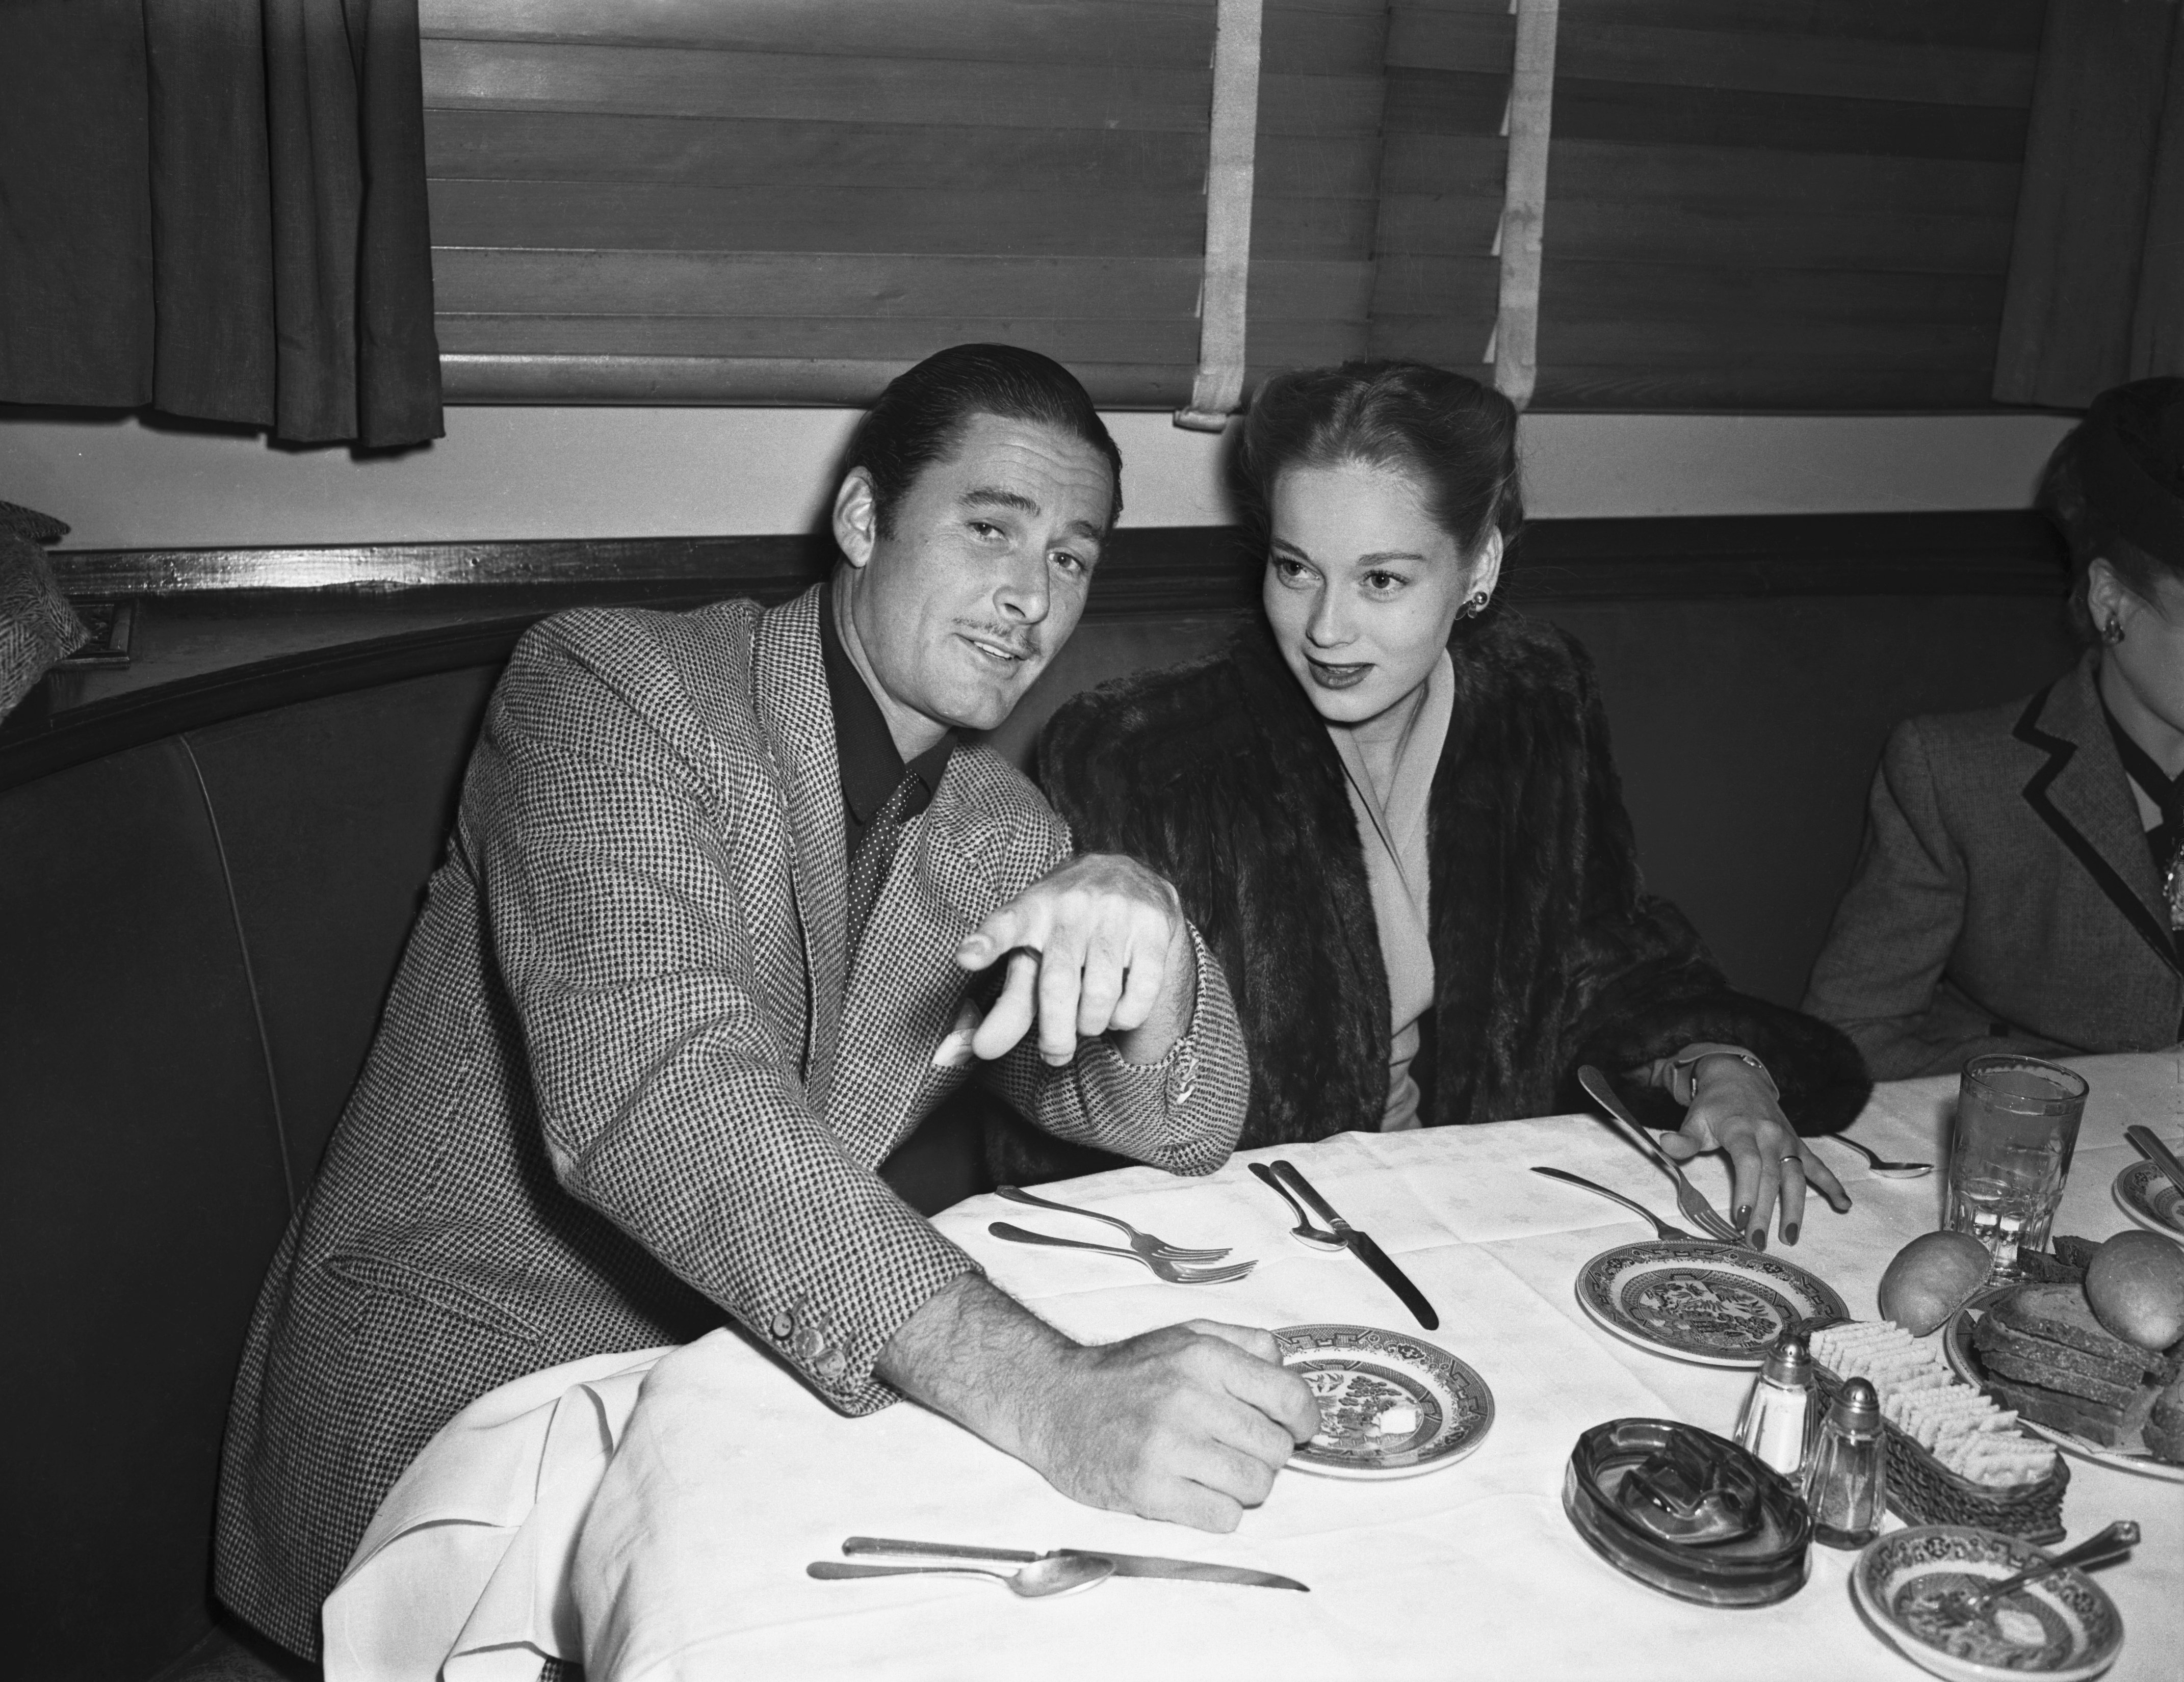 Image Source: Getty Images/Errol at a restaurant